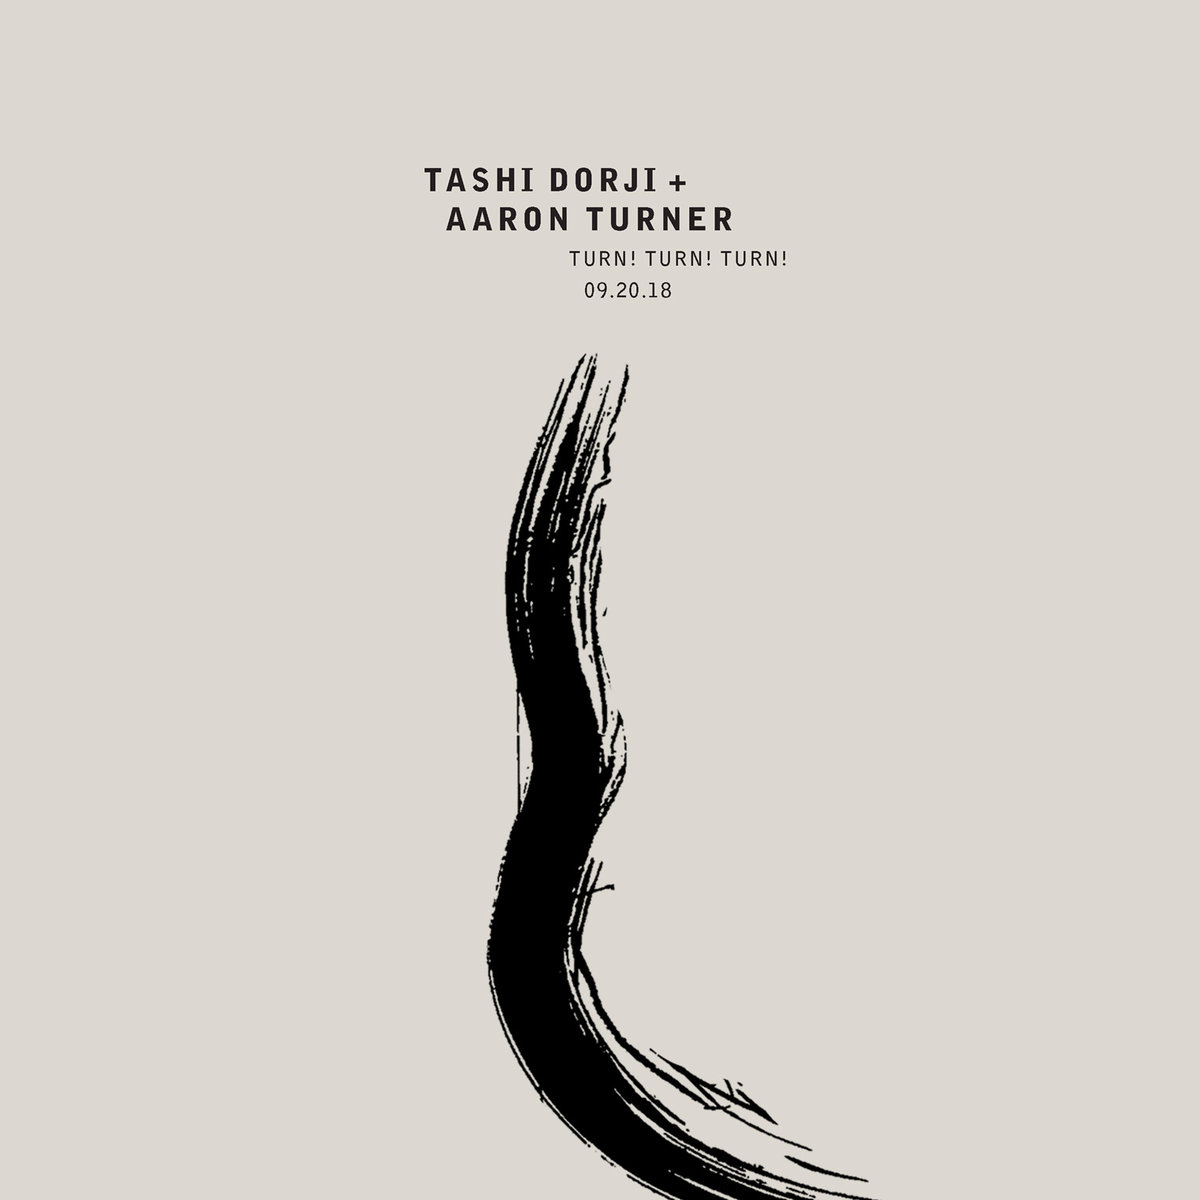 Tashi Dorji & Aaron Turner – Turn! Turn! Turn! (SIGE Records) album review